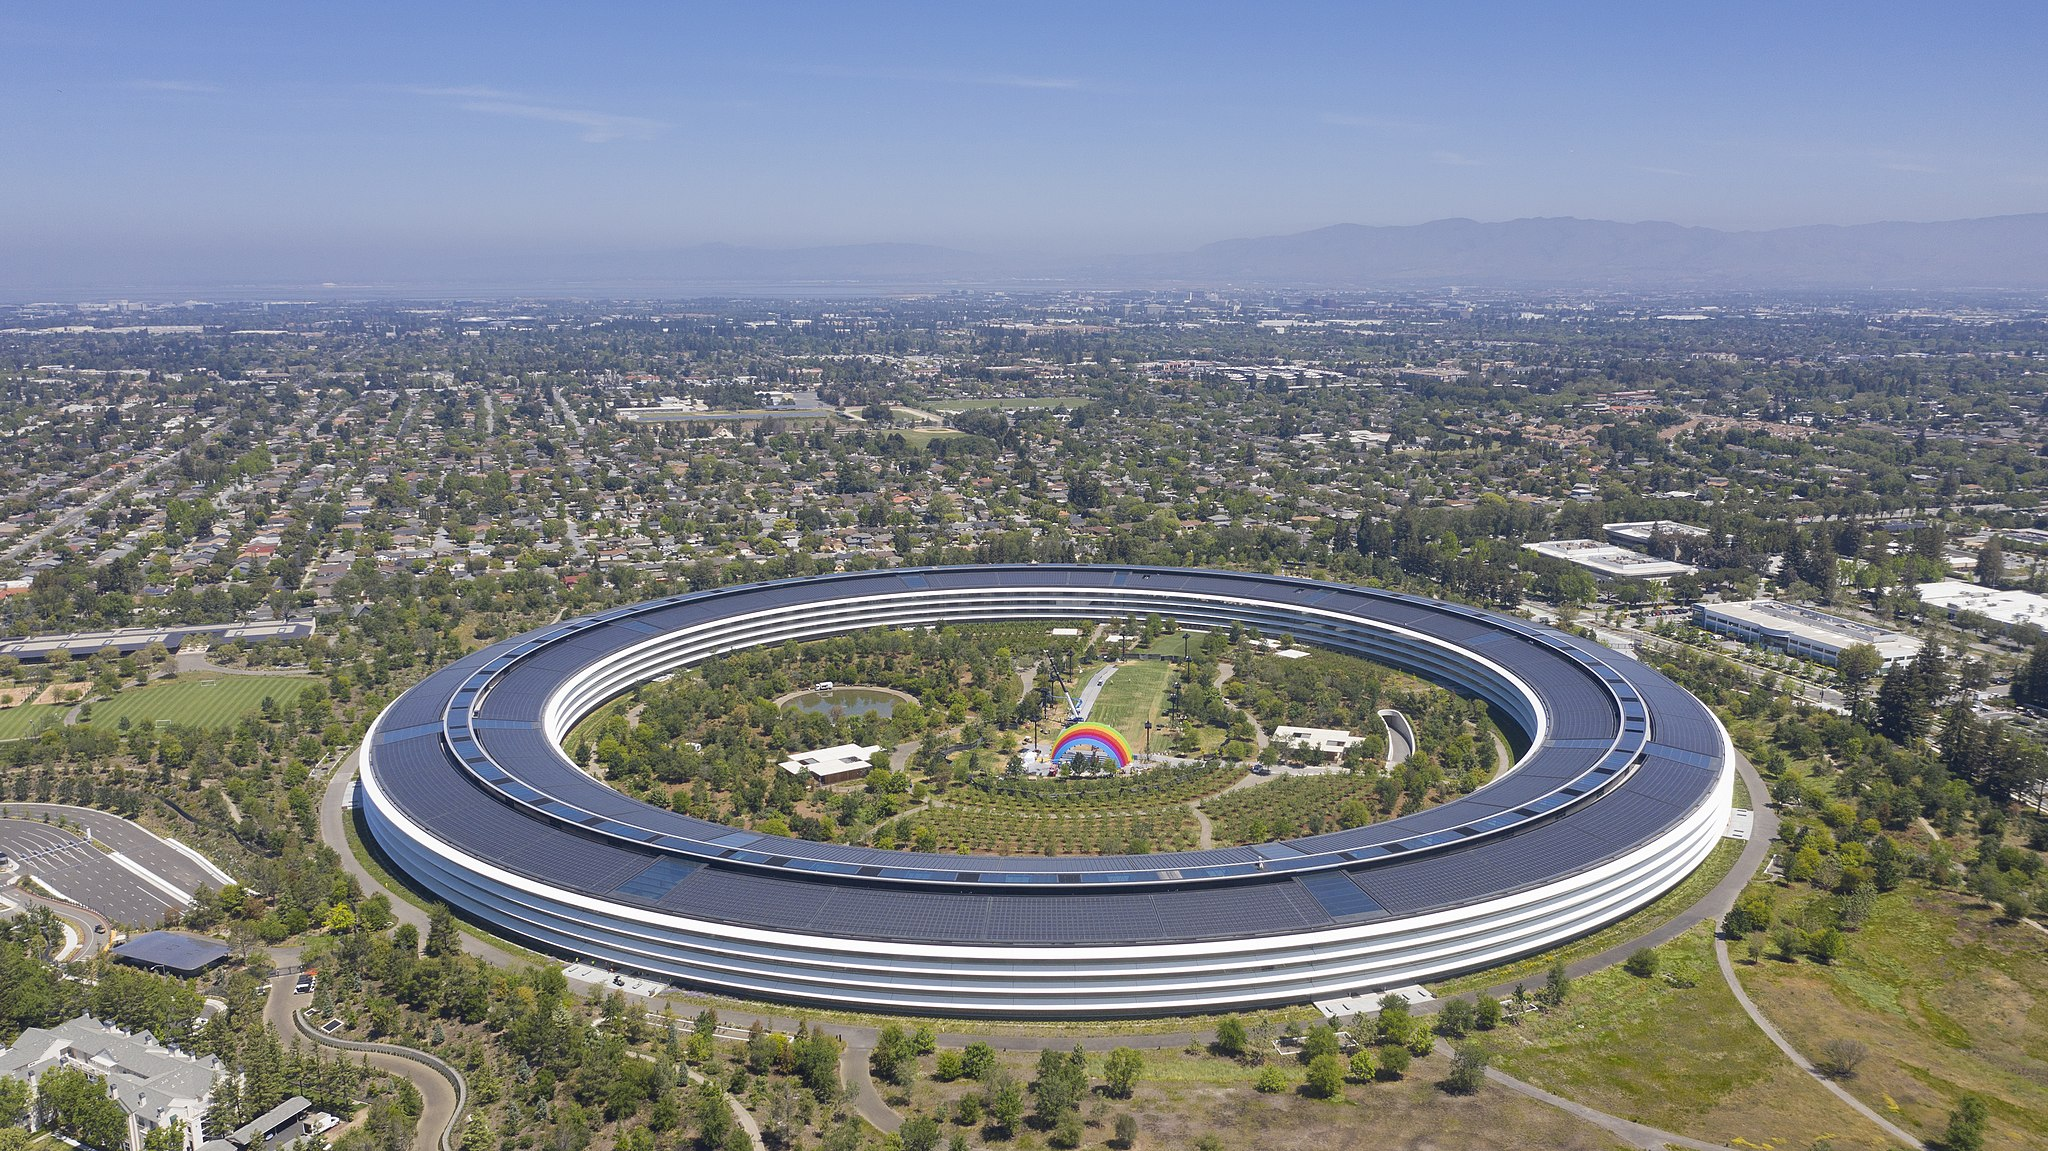 Apple Headquarters. A toric-shaped building with greenspace in the center